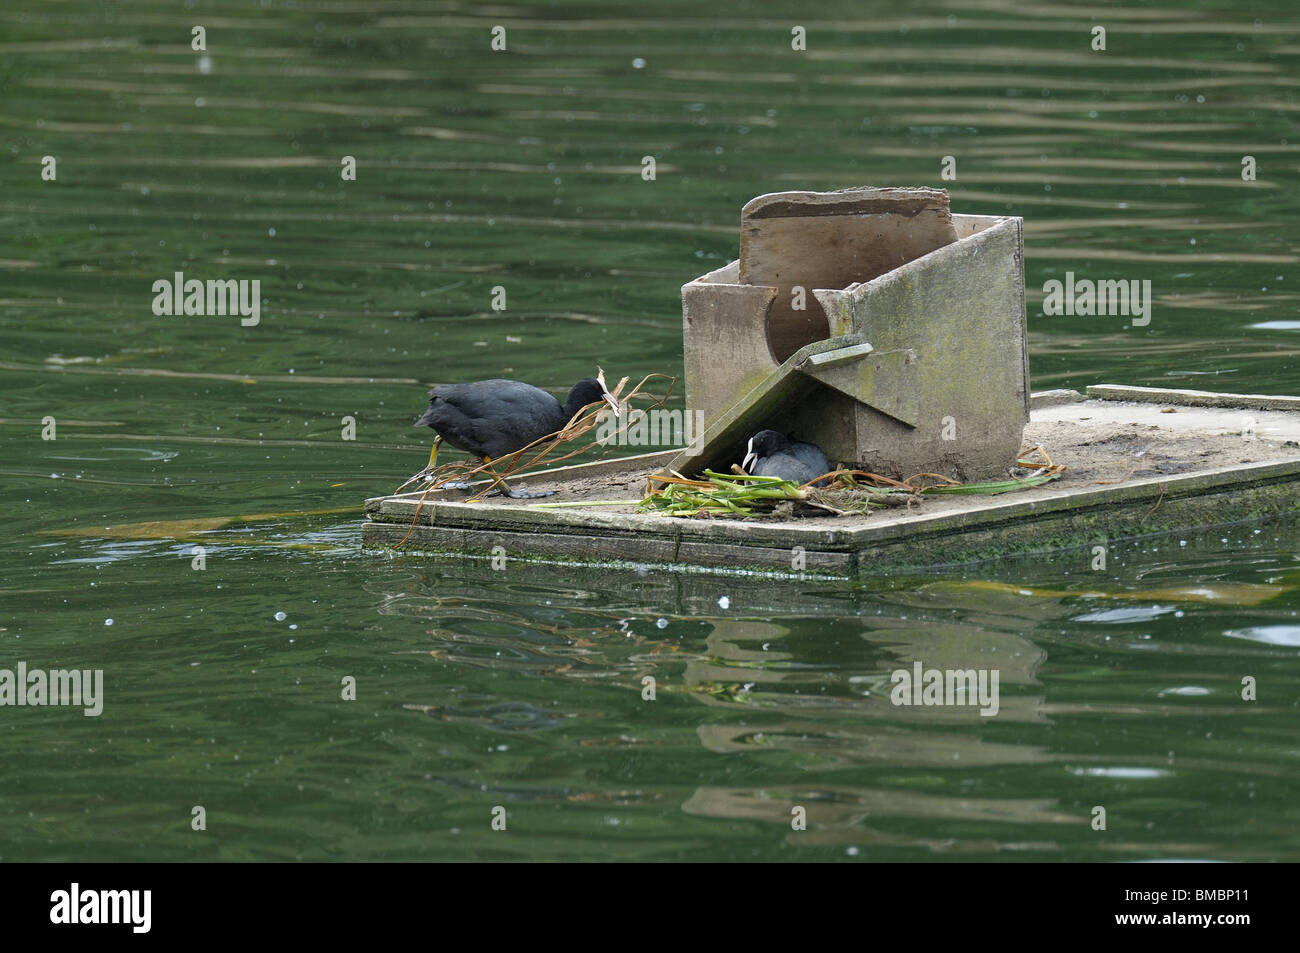 Coots nest building on a raft Stock Photo